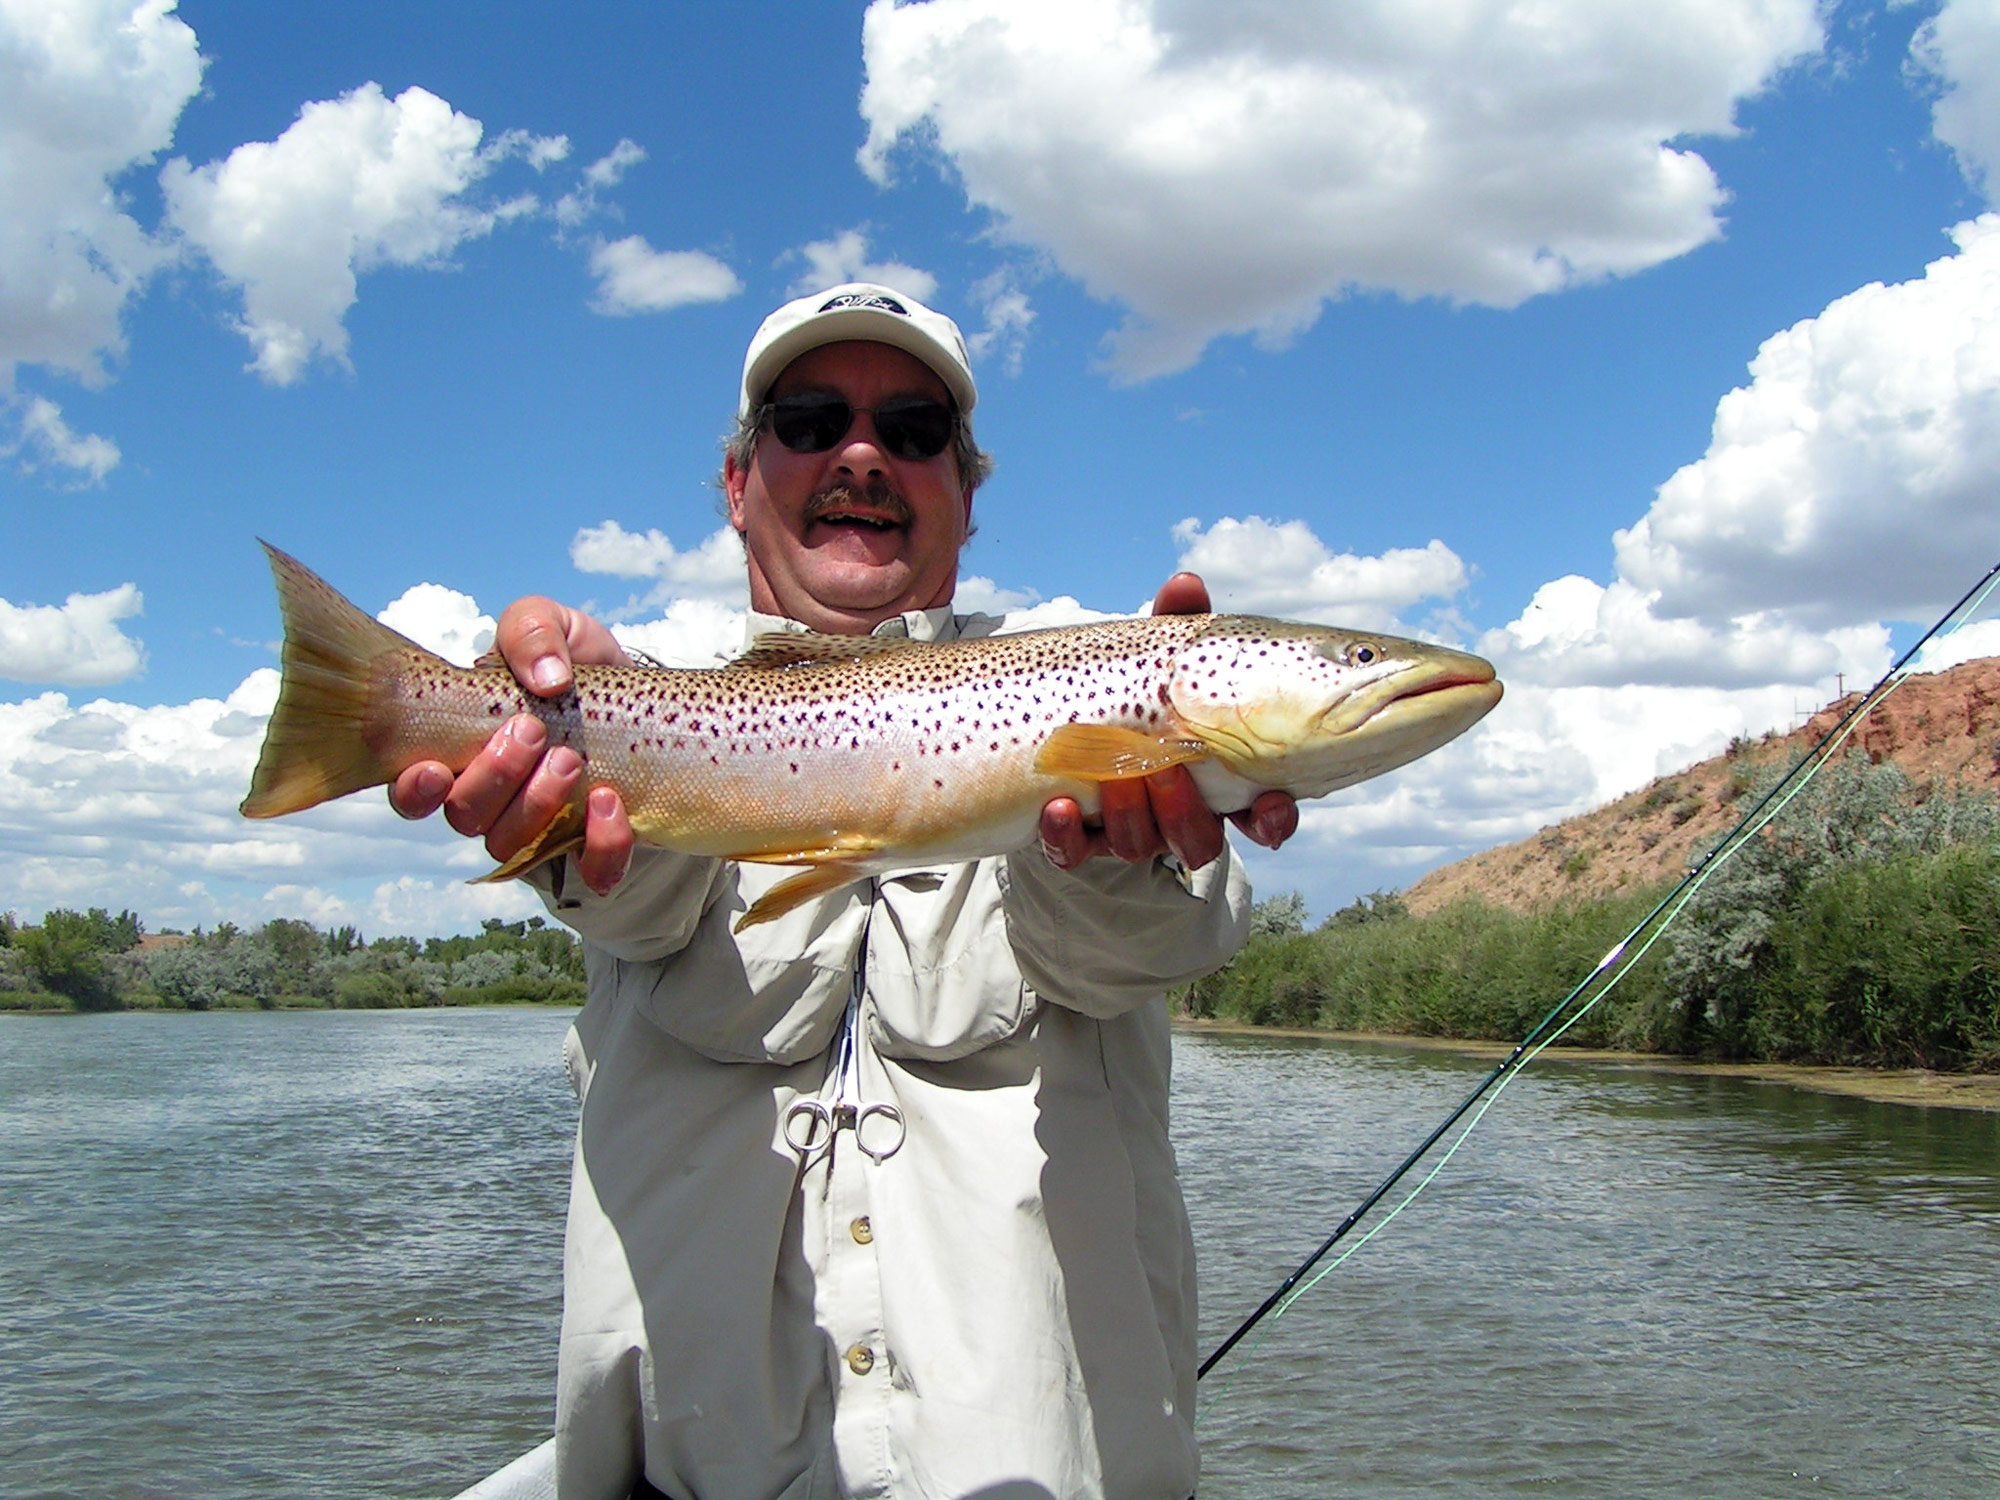 Miracle mile four seasons anglers for Miracle mile fishing